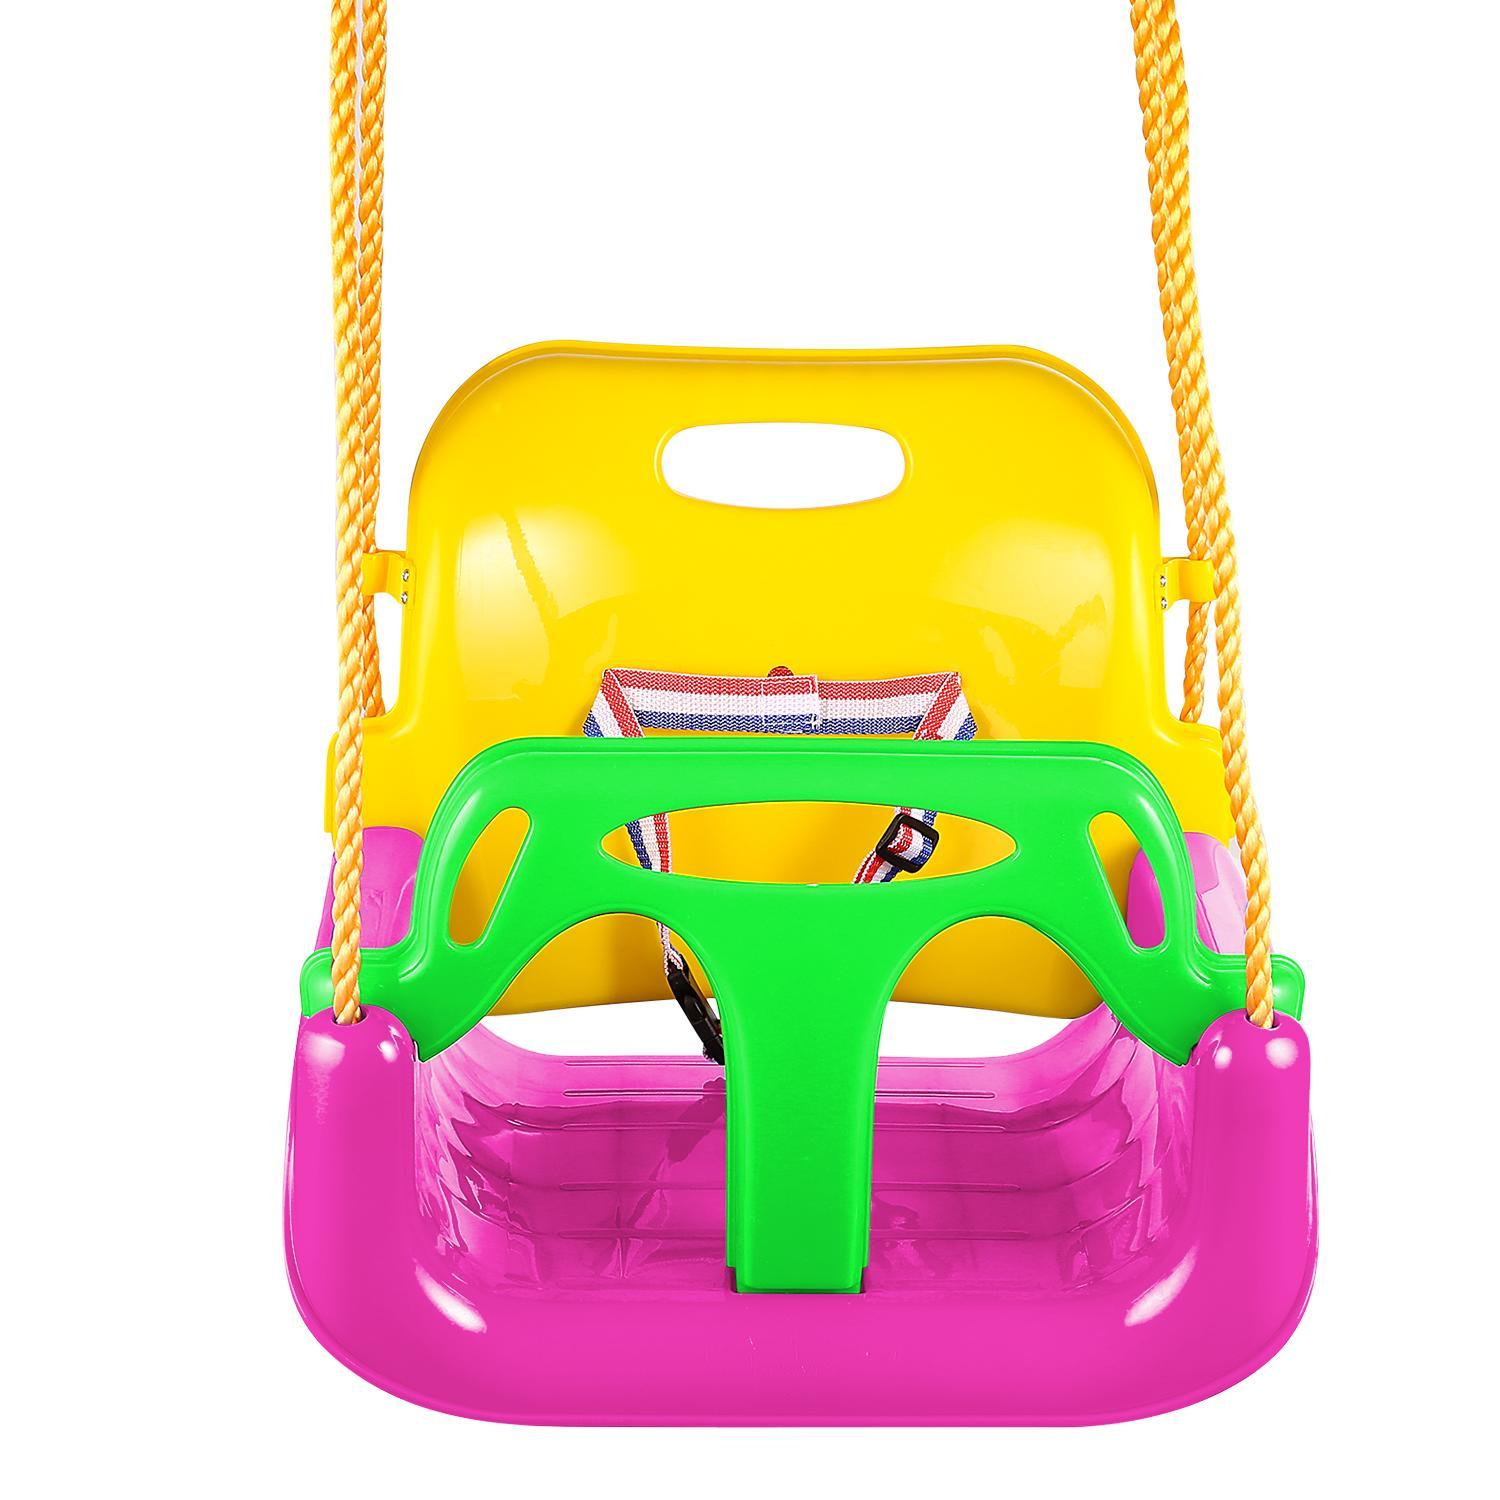 3 in 1 Swing Seat, Baby High Back Full Bucket Swing Seat with Heavy Duty Chains